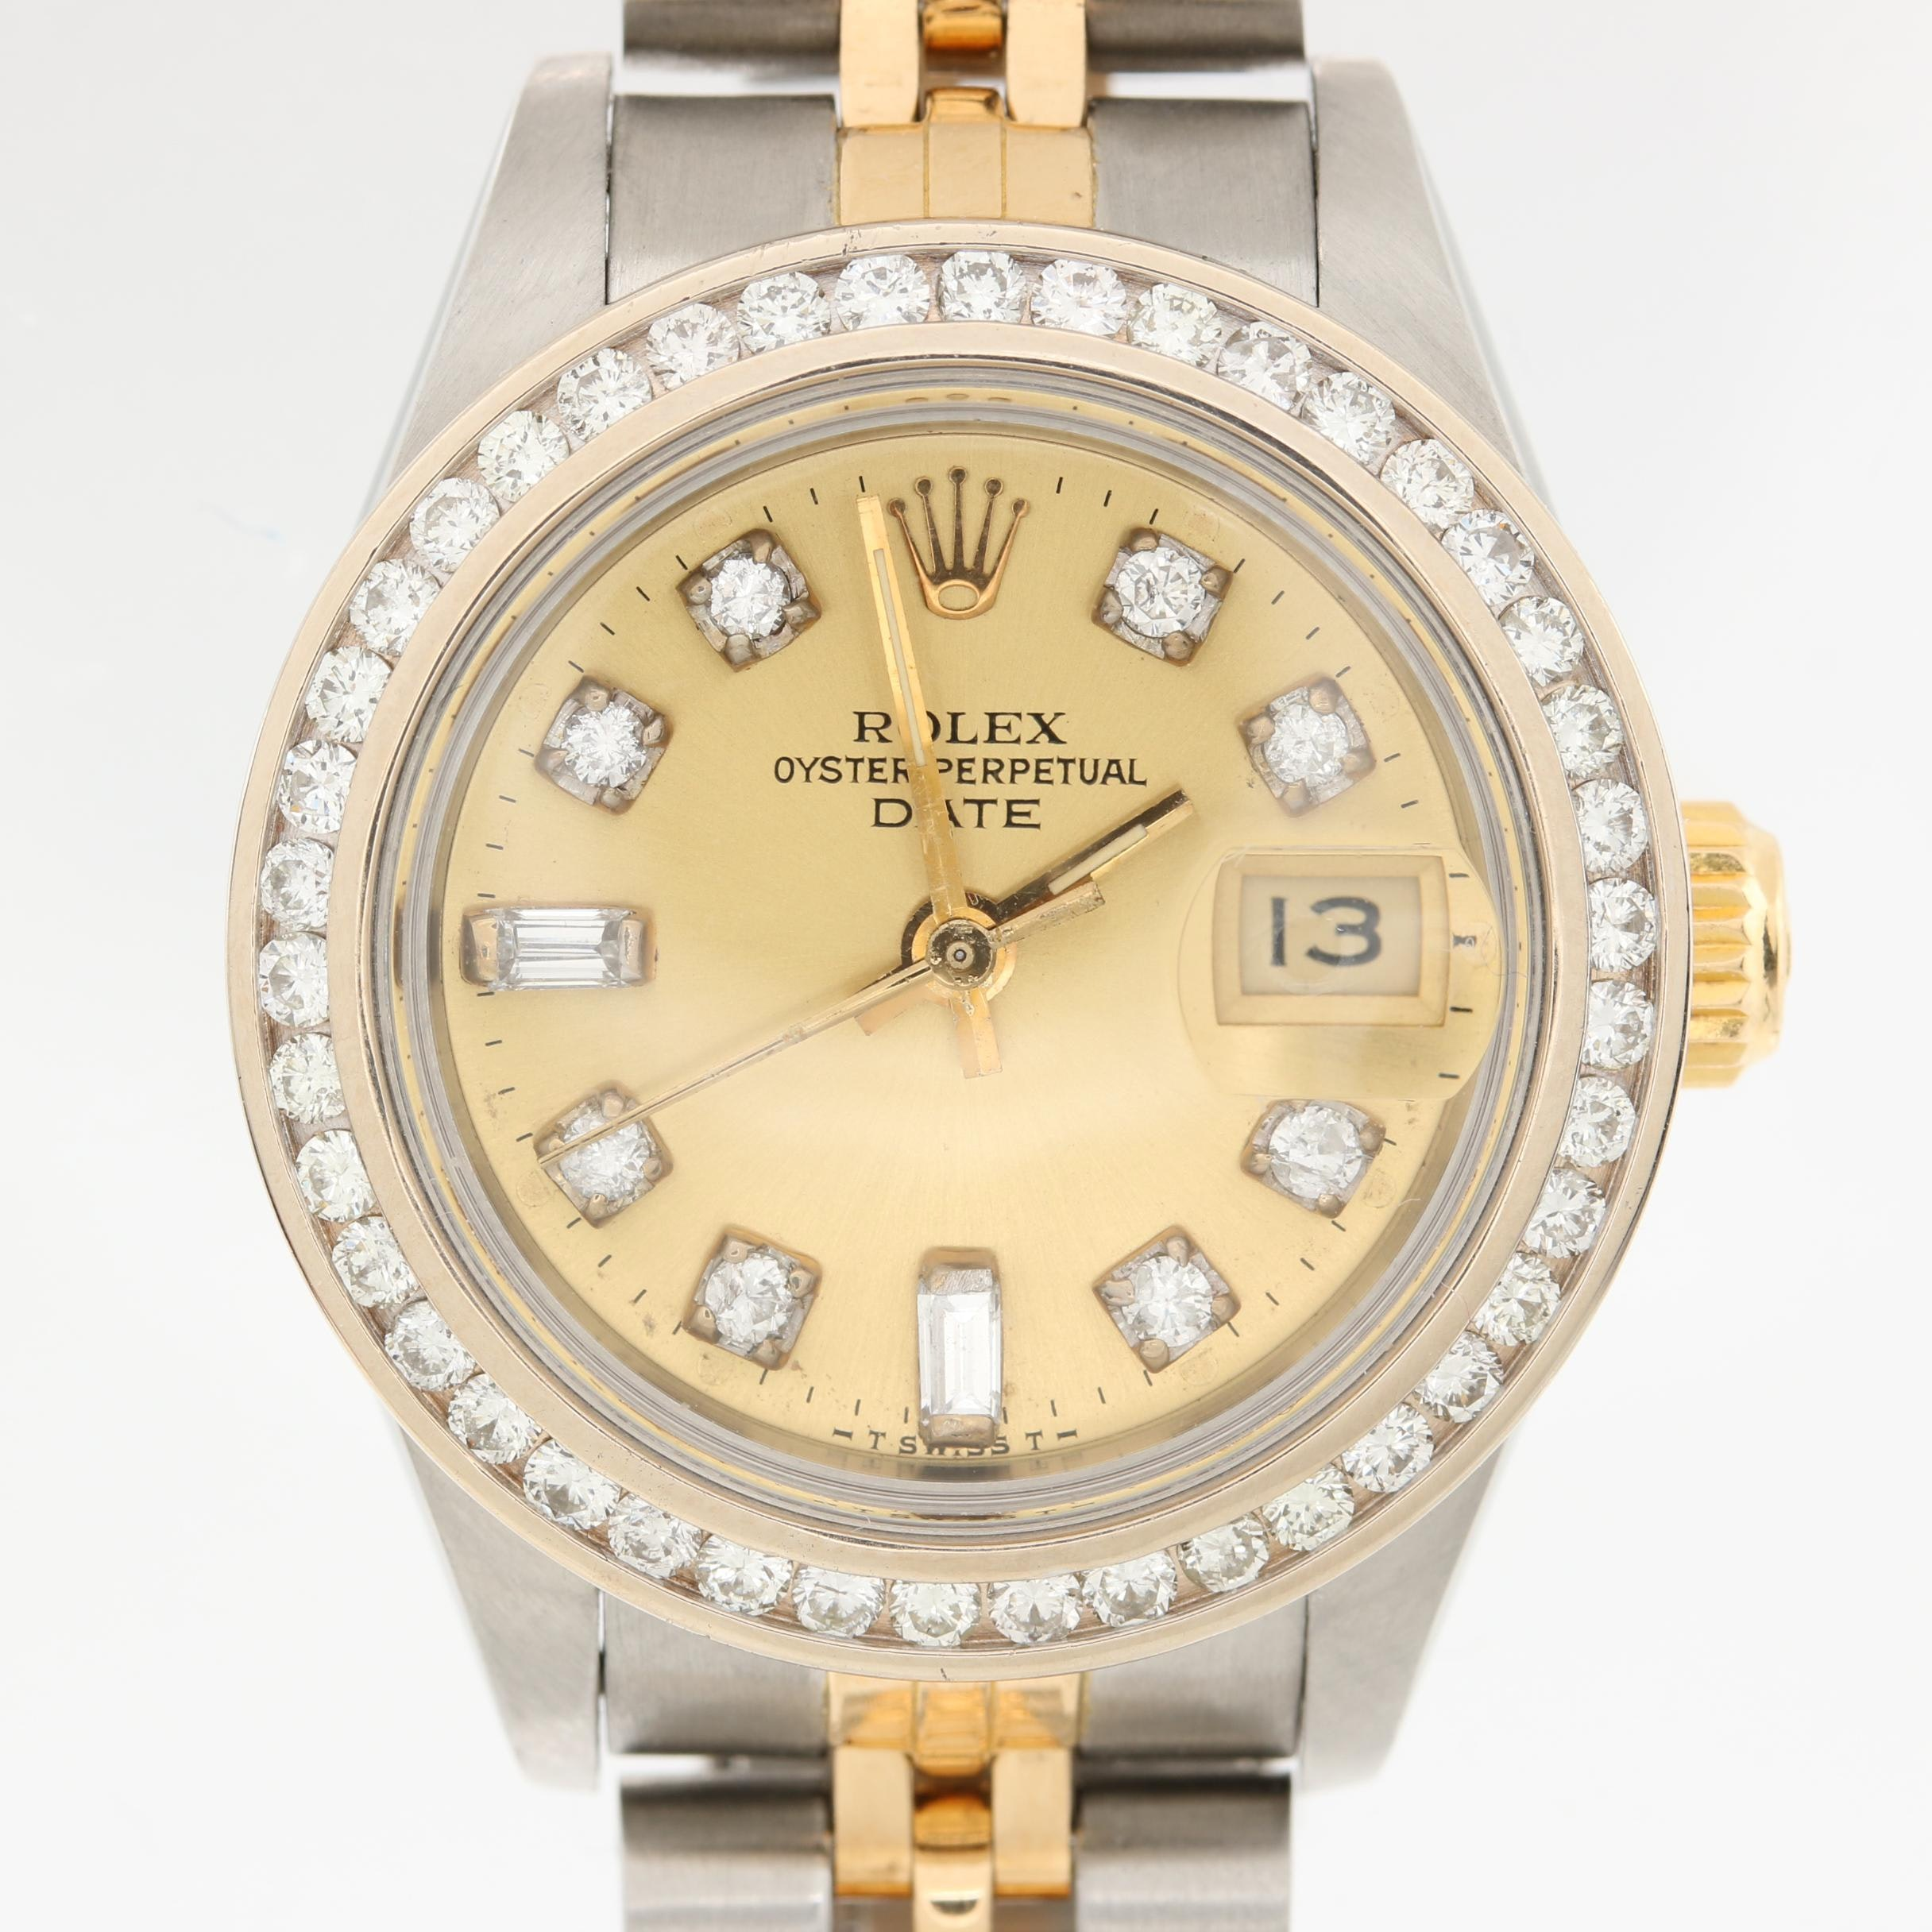 Rolex Oyster Perpetual 18K, 14K Gold and Stainless 1.19 CTW Diamond Wristwatch